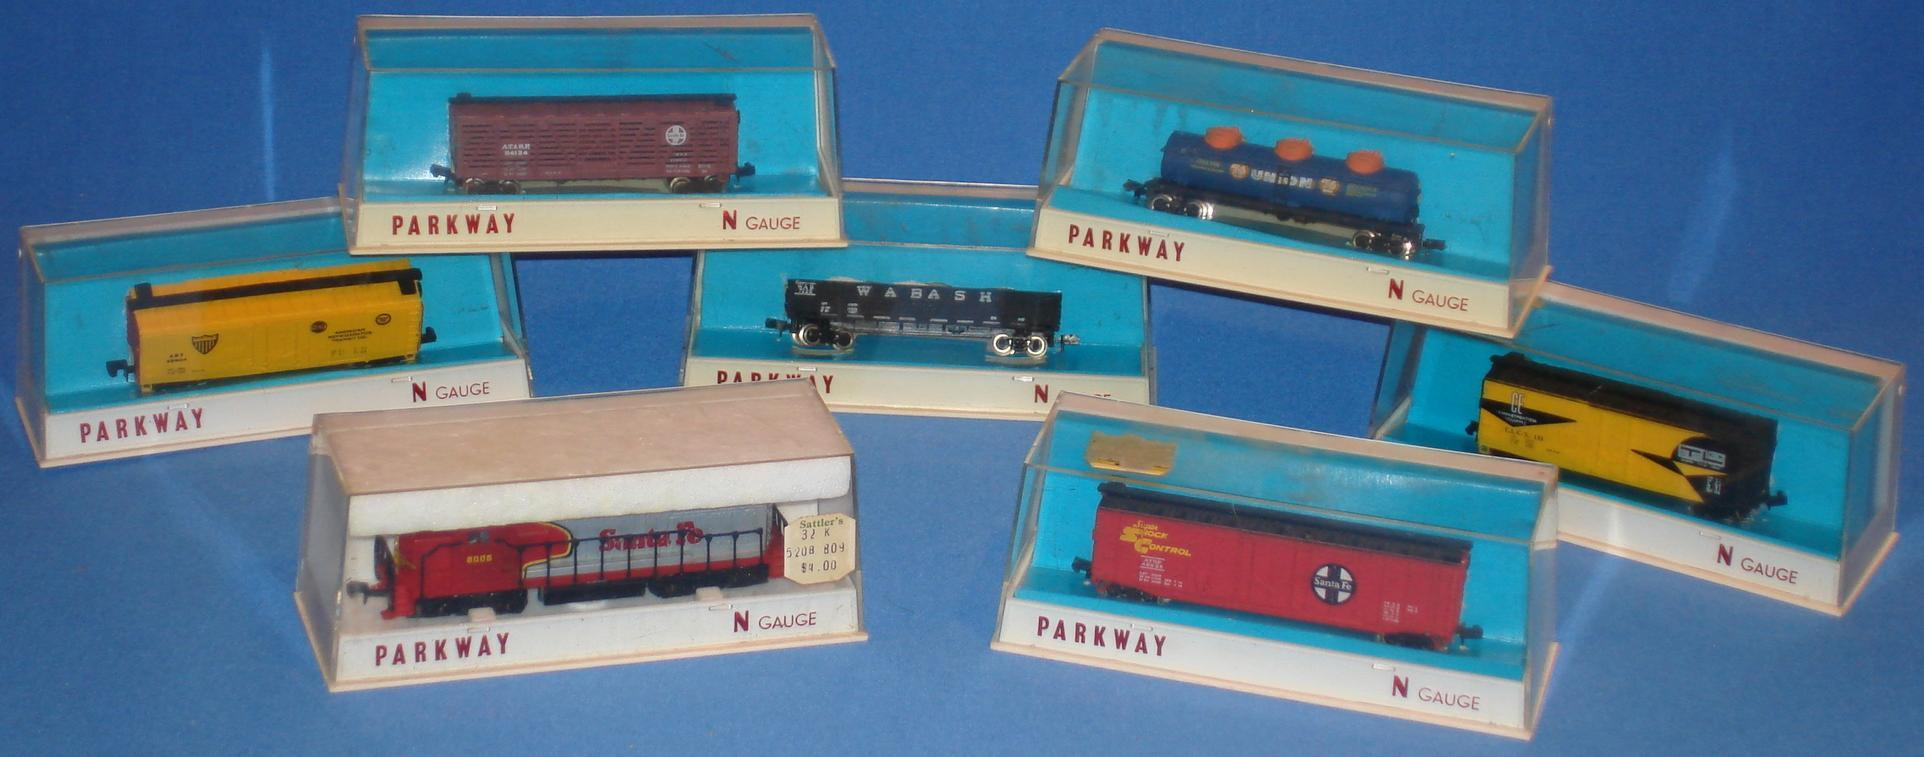 Parkway N Gauge Model Train Collection